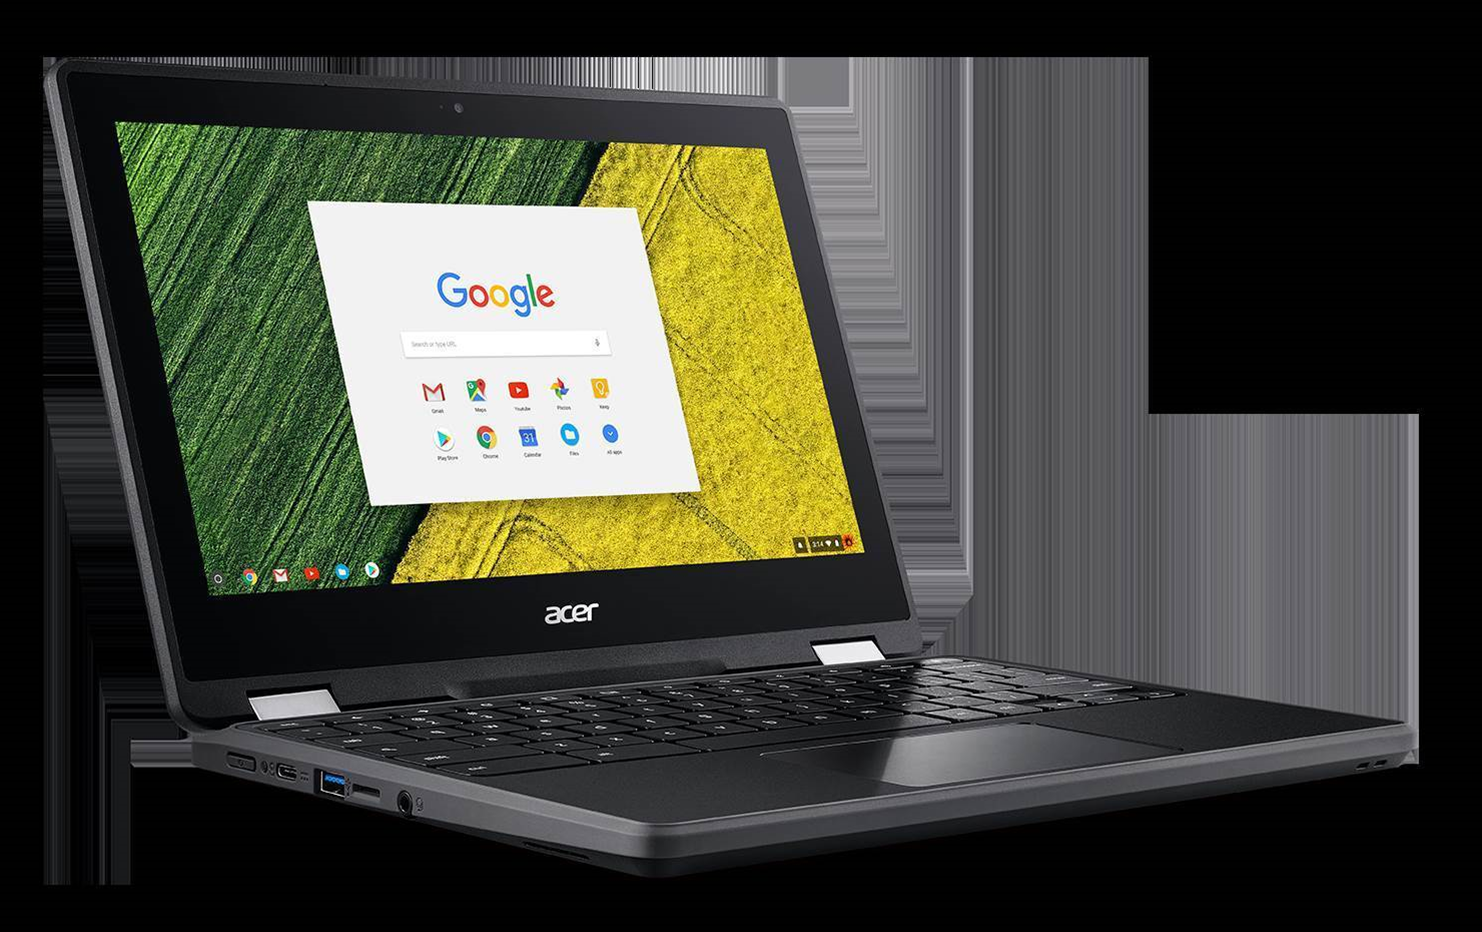 ACT buys 15,000 Chromebooks for students